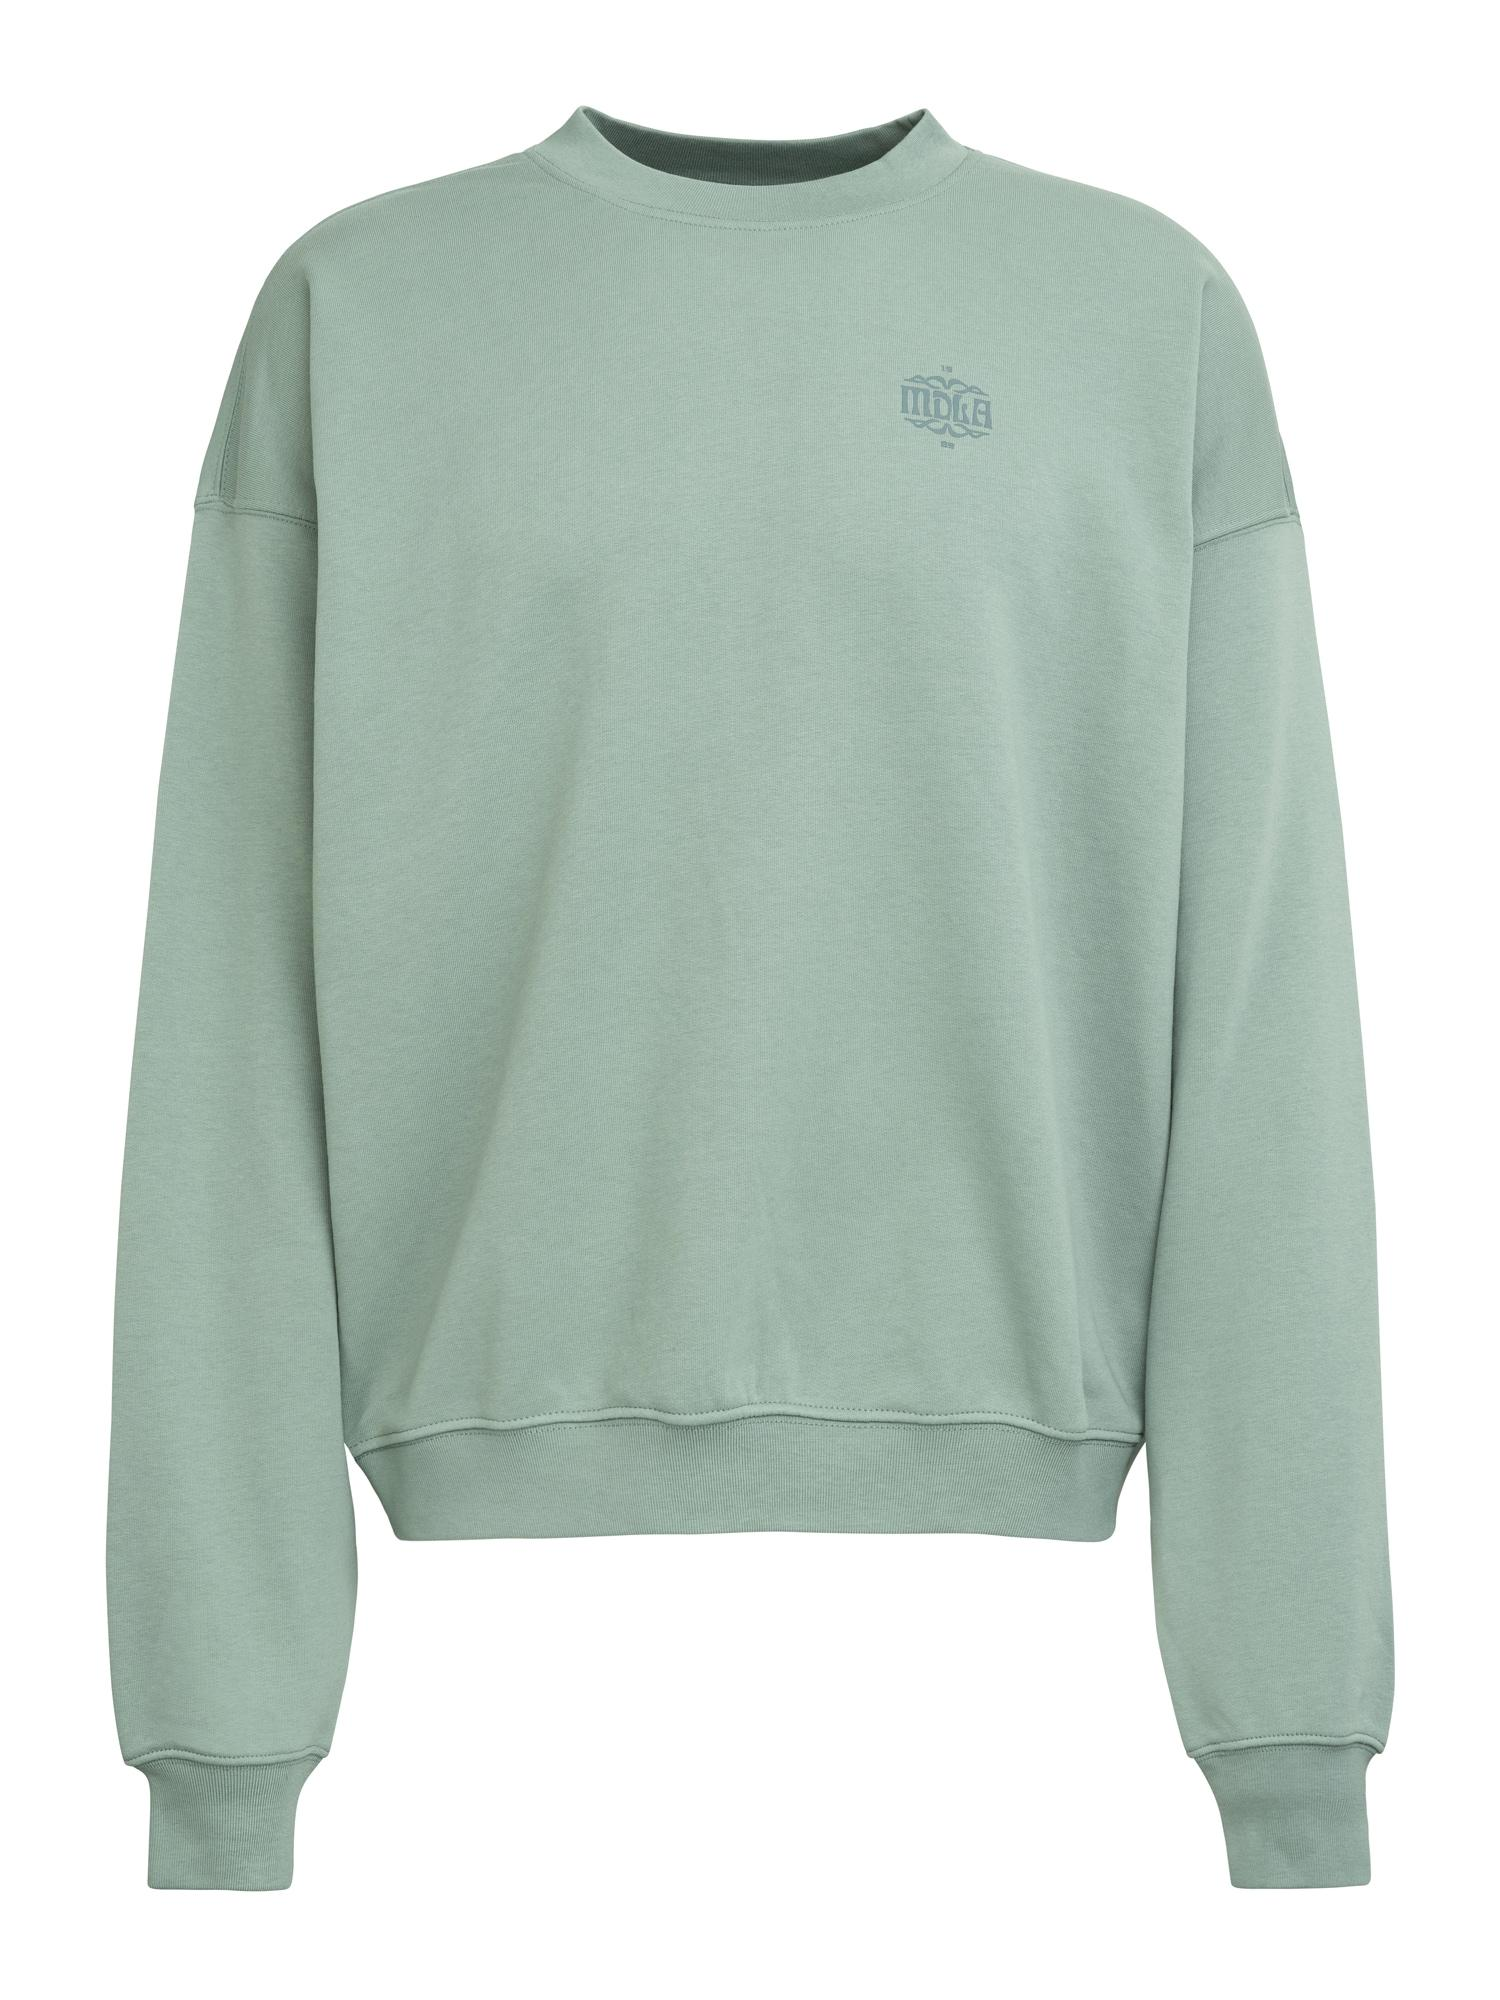 Magdeburg Los Angeles Sweater 'Chinois' mint